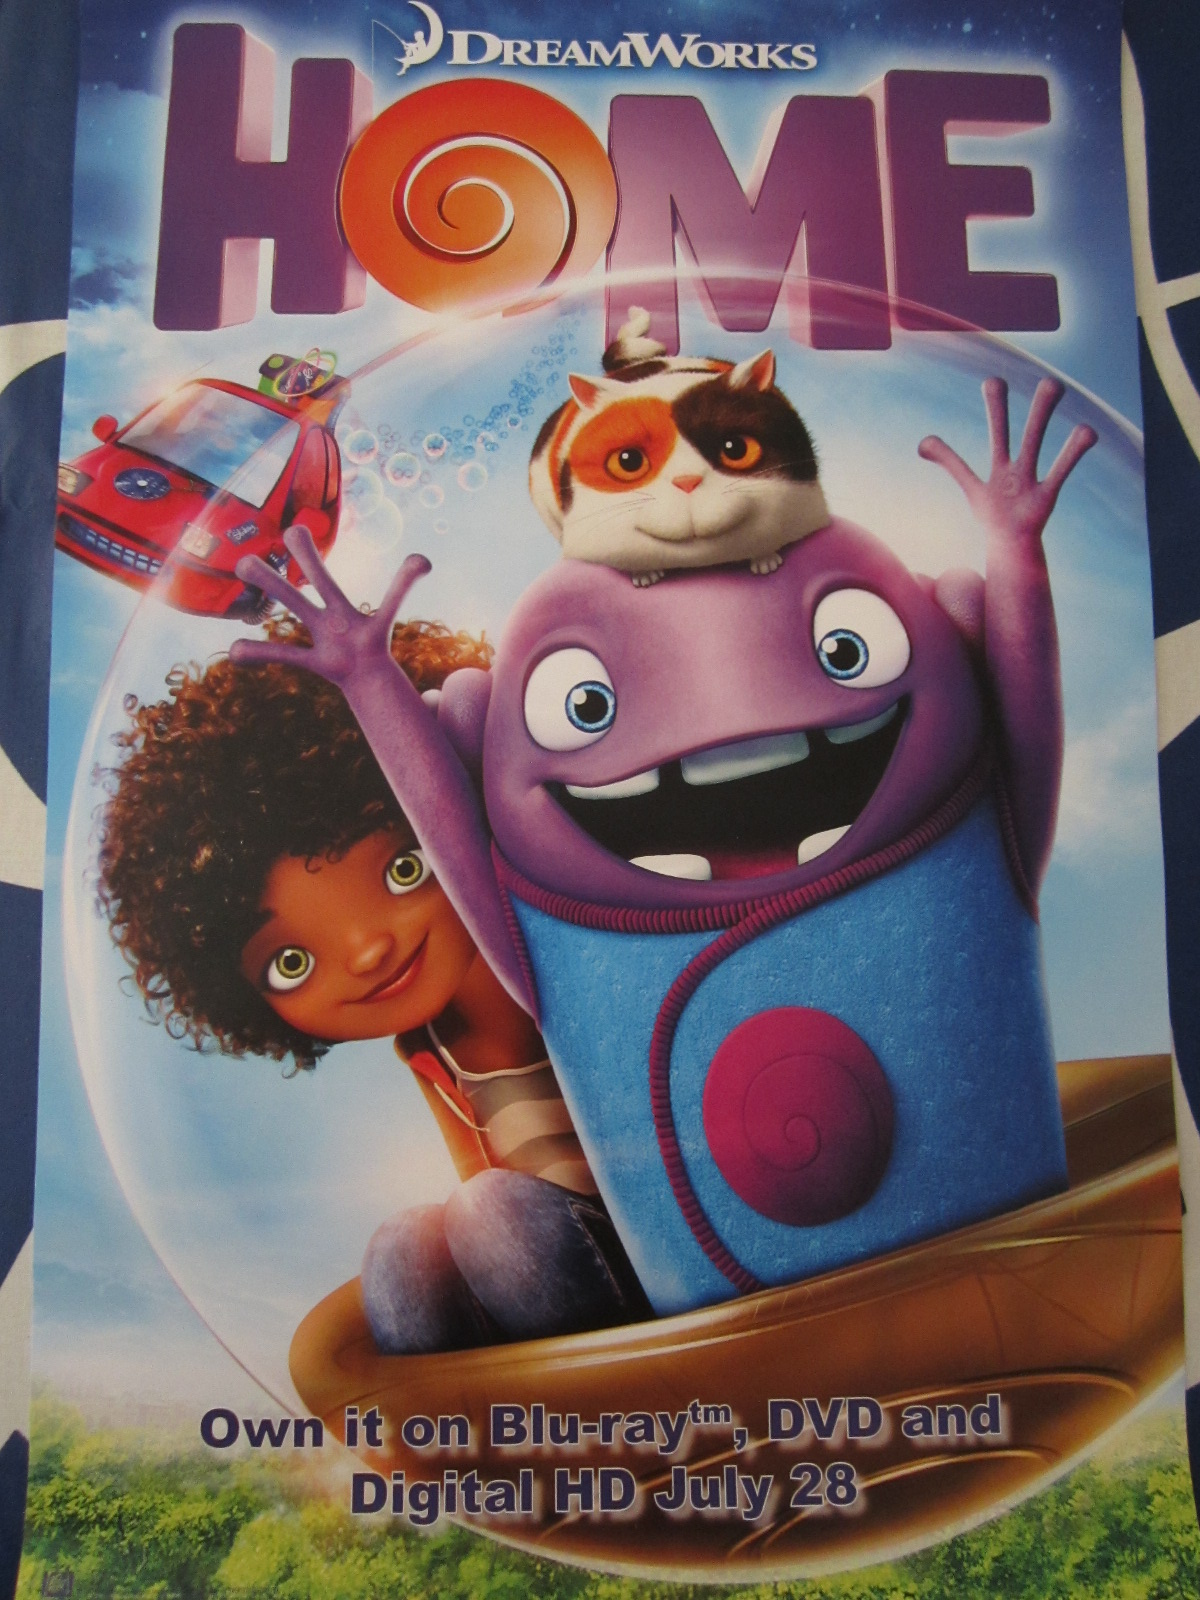 home 2015 promo dreamworks movie poster 3